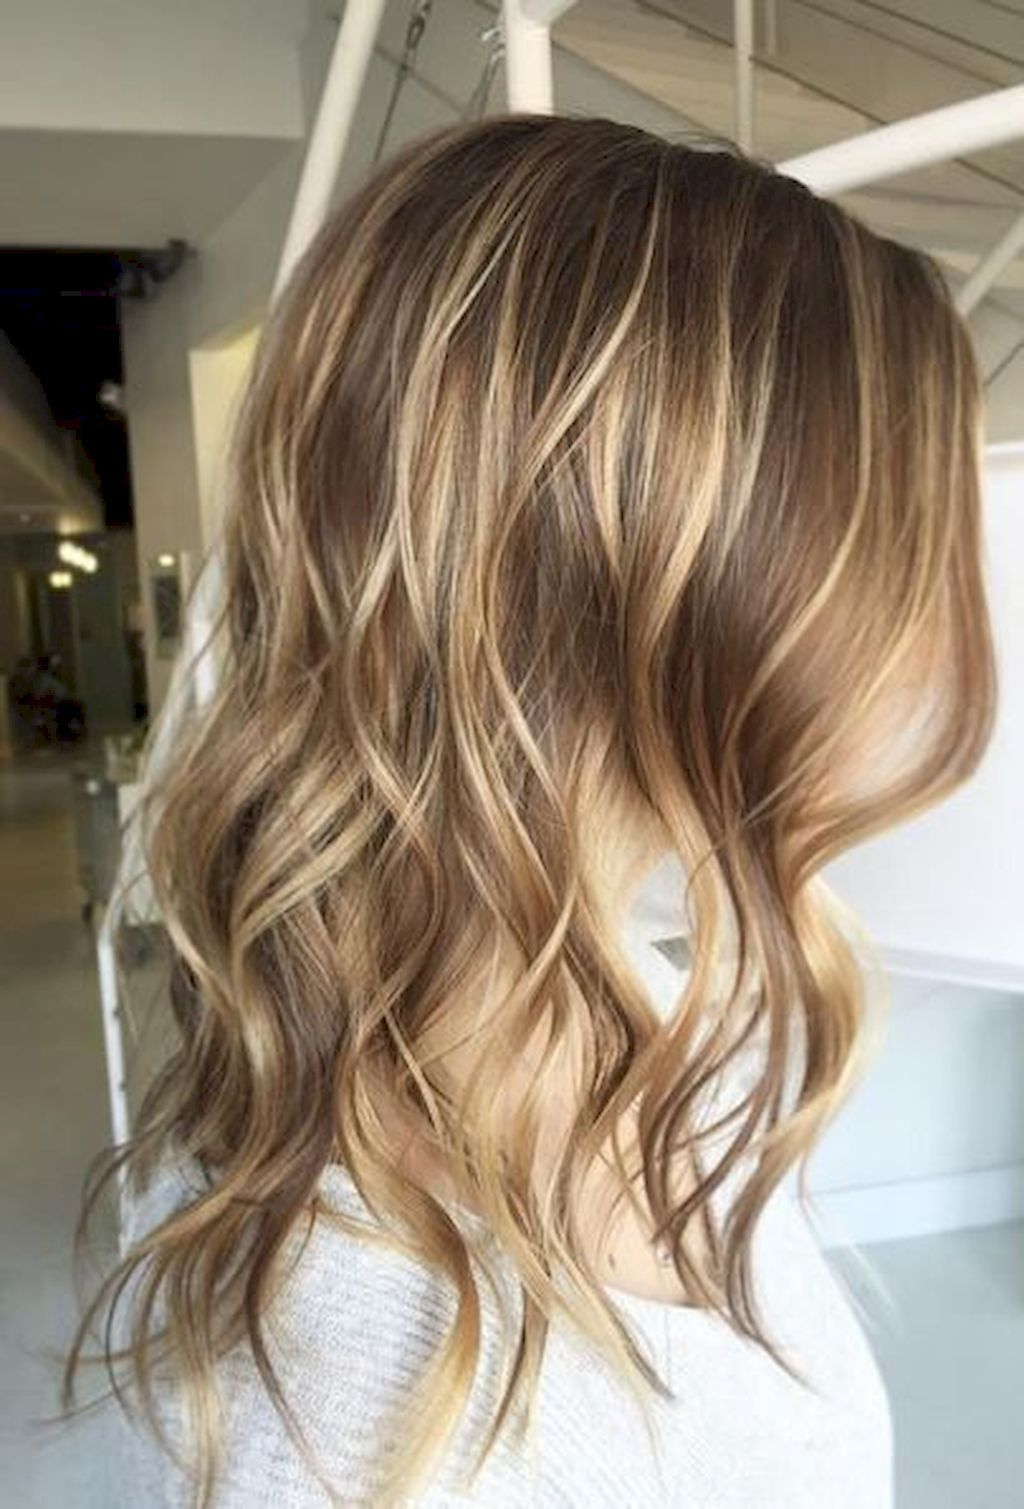 Adorable 11 Cute Ideas To Spice Up Light Brown Hair #Brown #Cute